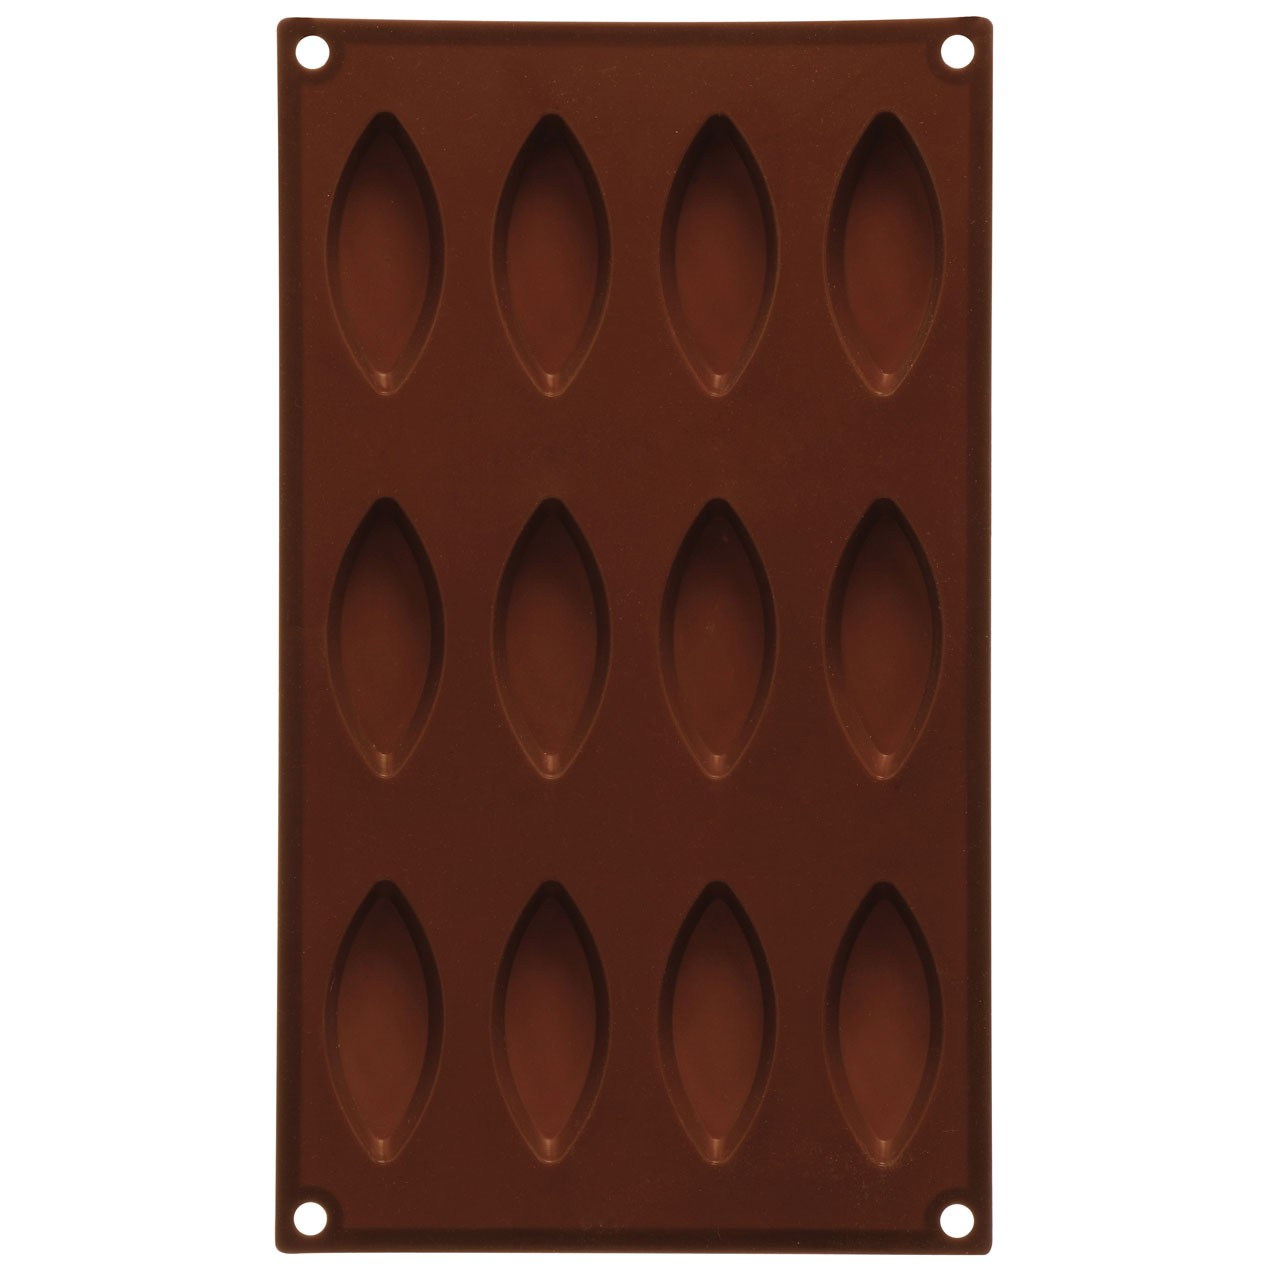 12 Eye Shaped Chocolate Mould Tray - Brown - Click Image to Close